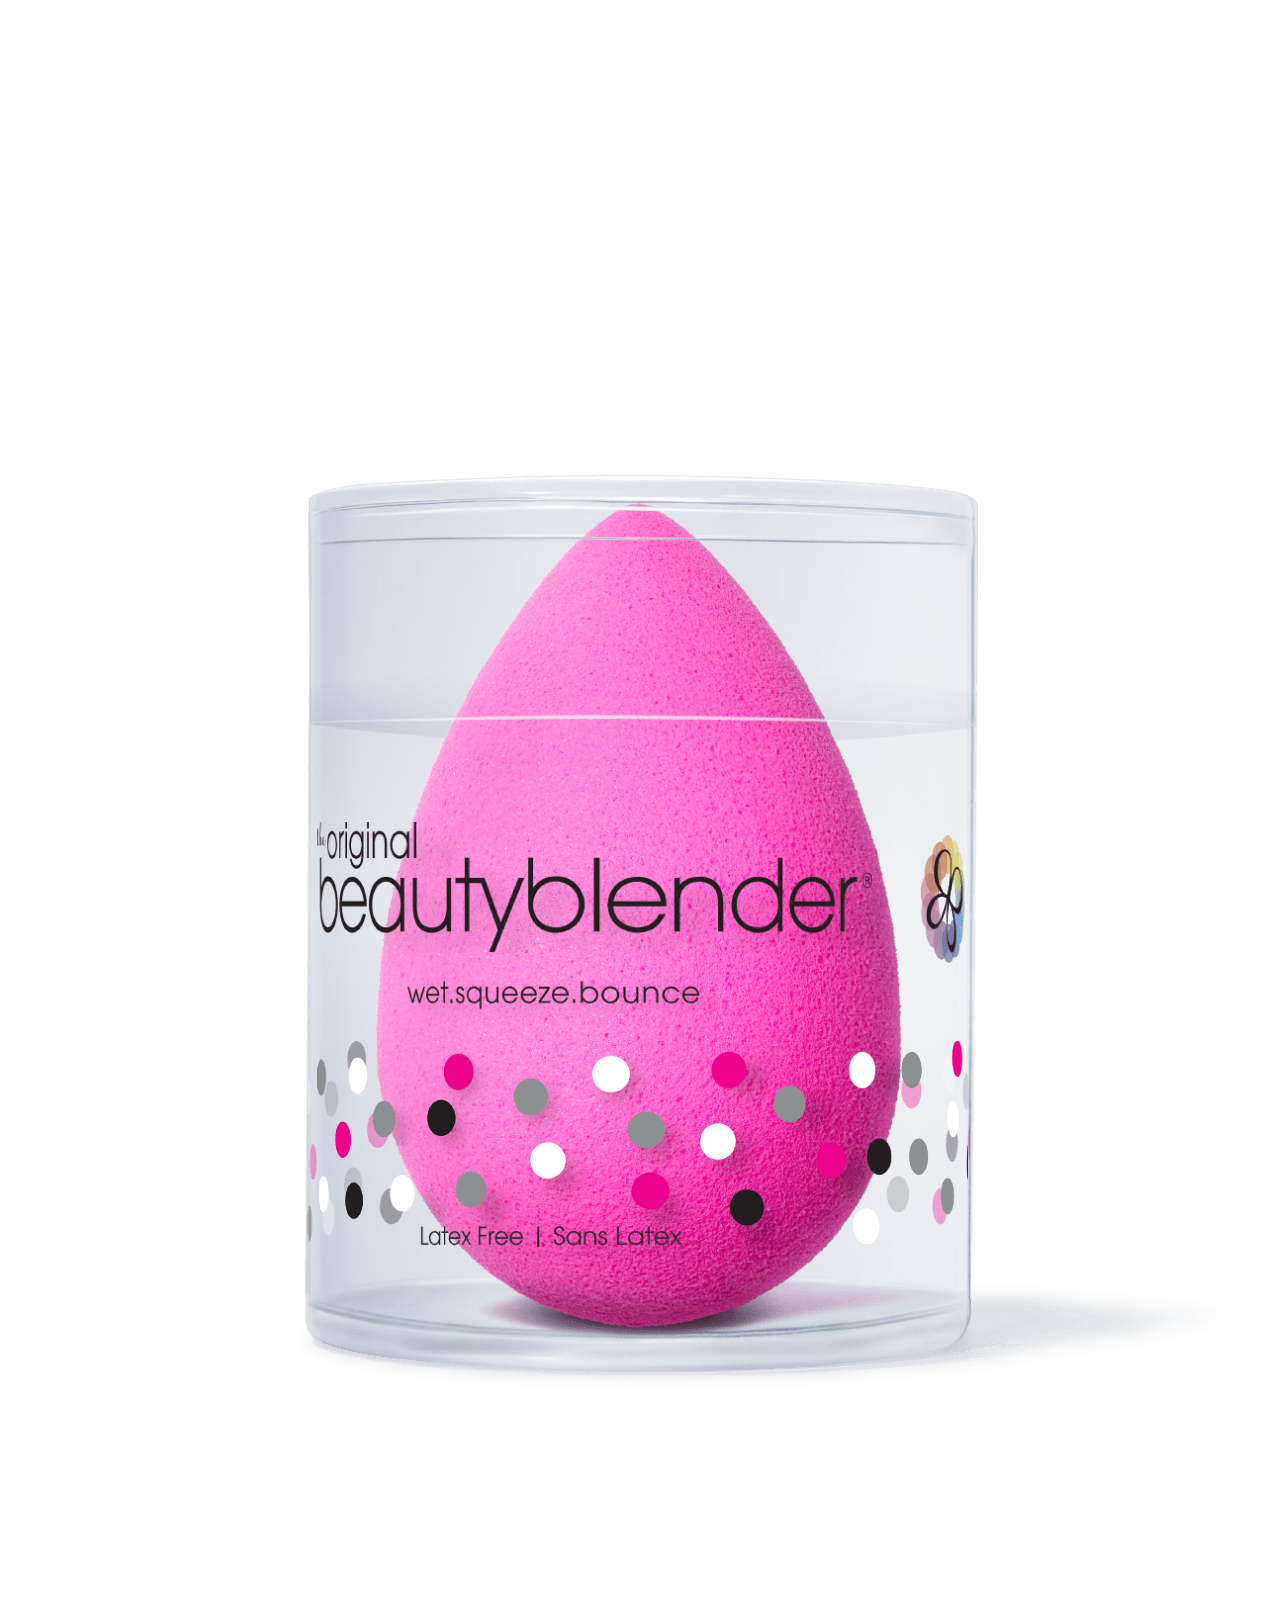 THE ORIGINAL BEAUTYBLENDER® BEAUTY QUEEN LIMITED-EDITION